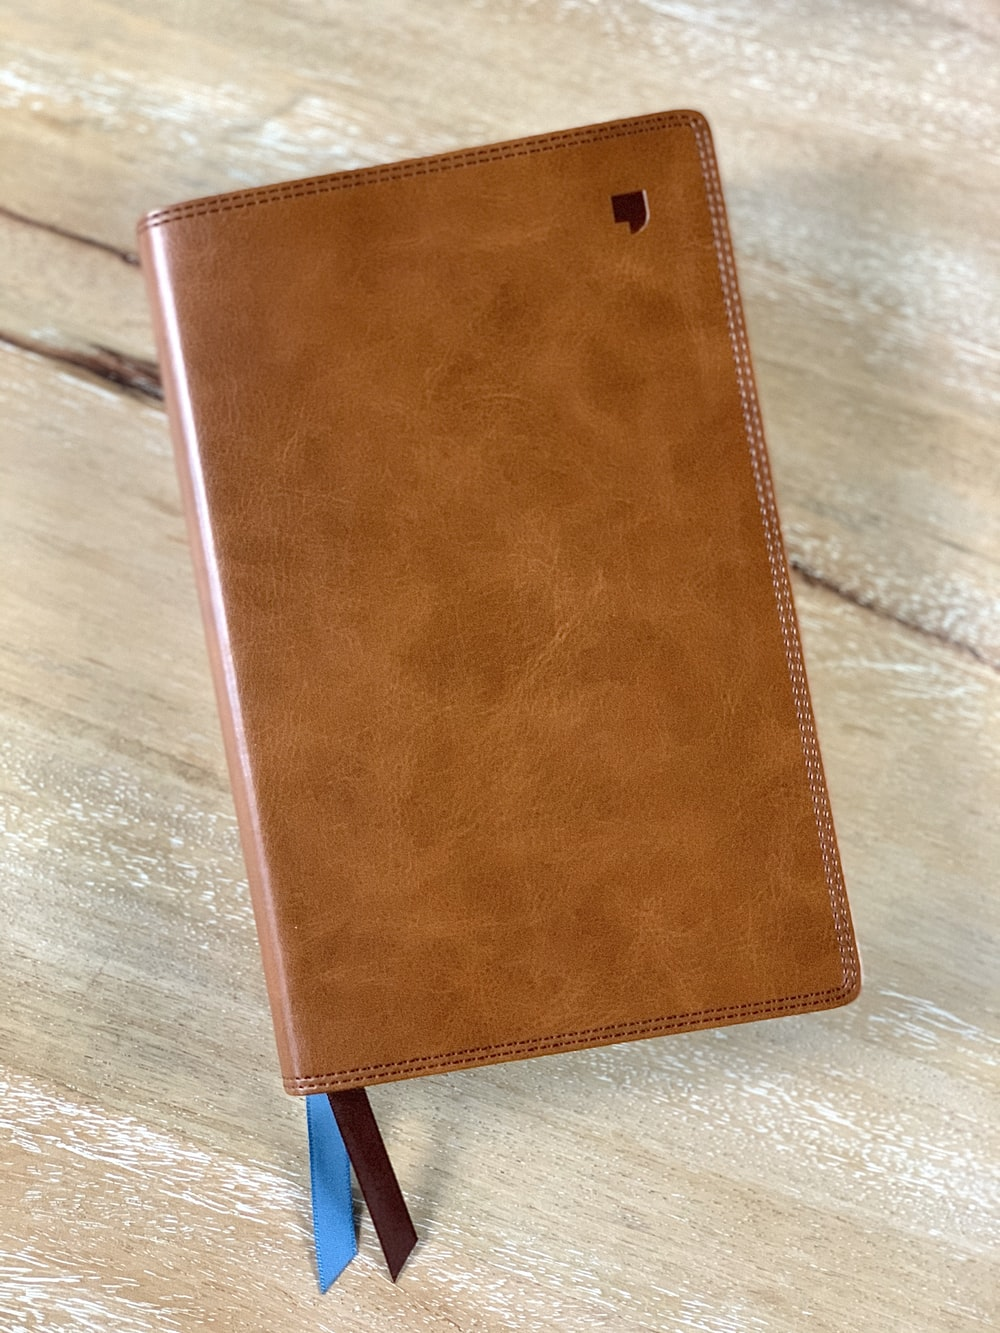 brown leather wallet on brown wooden table